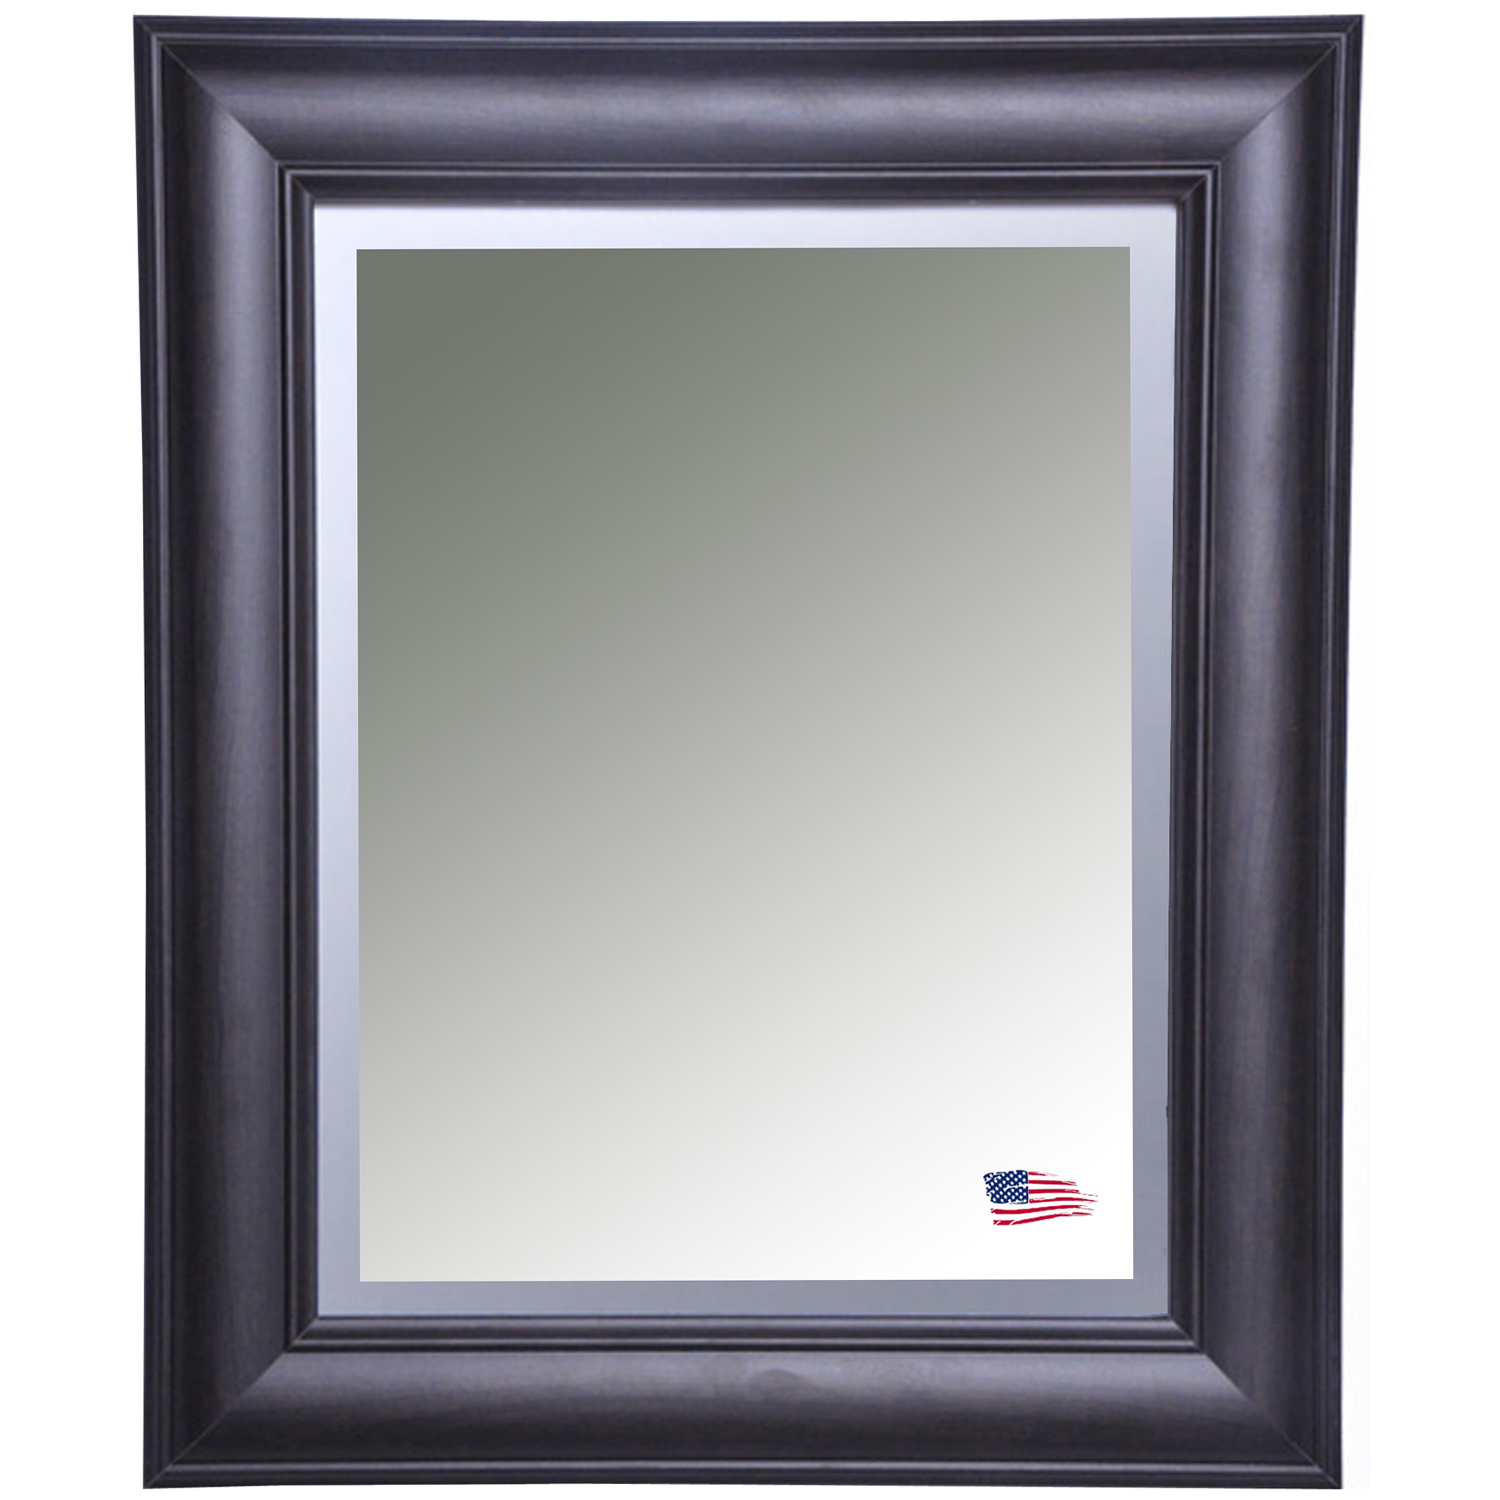 Wall Mirror - Brazilian Walnut Frame, Beveled Glass